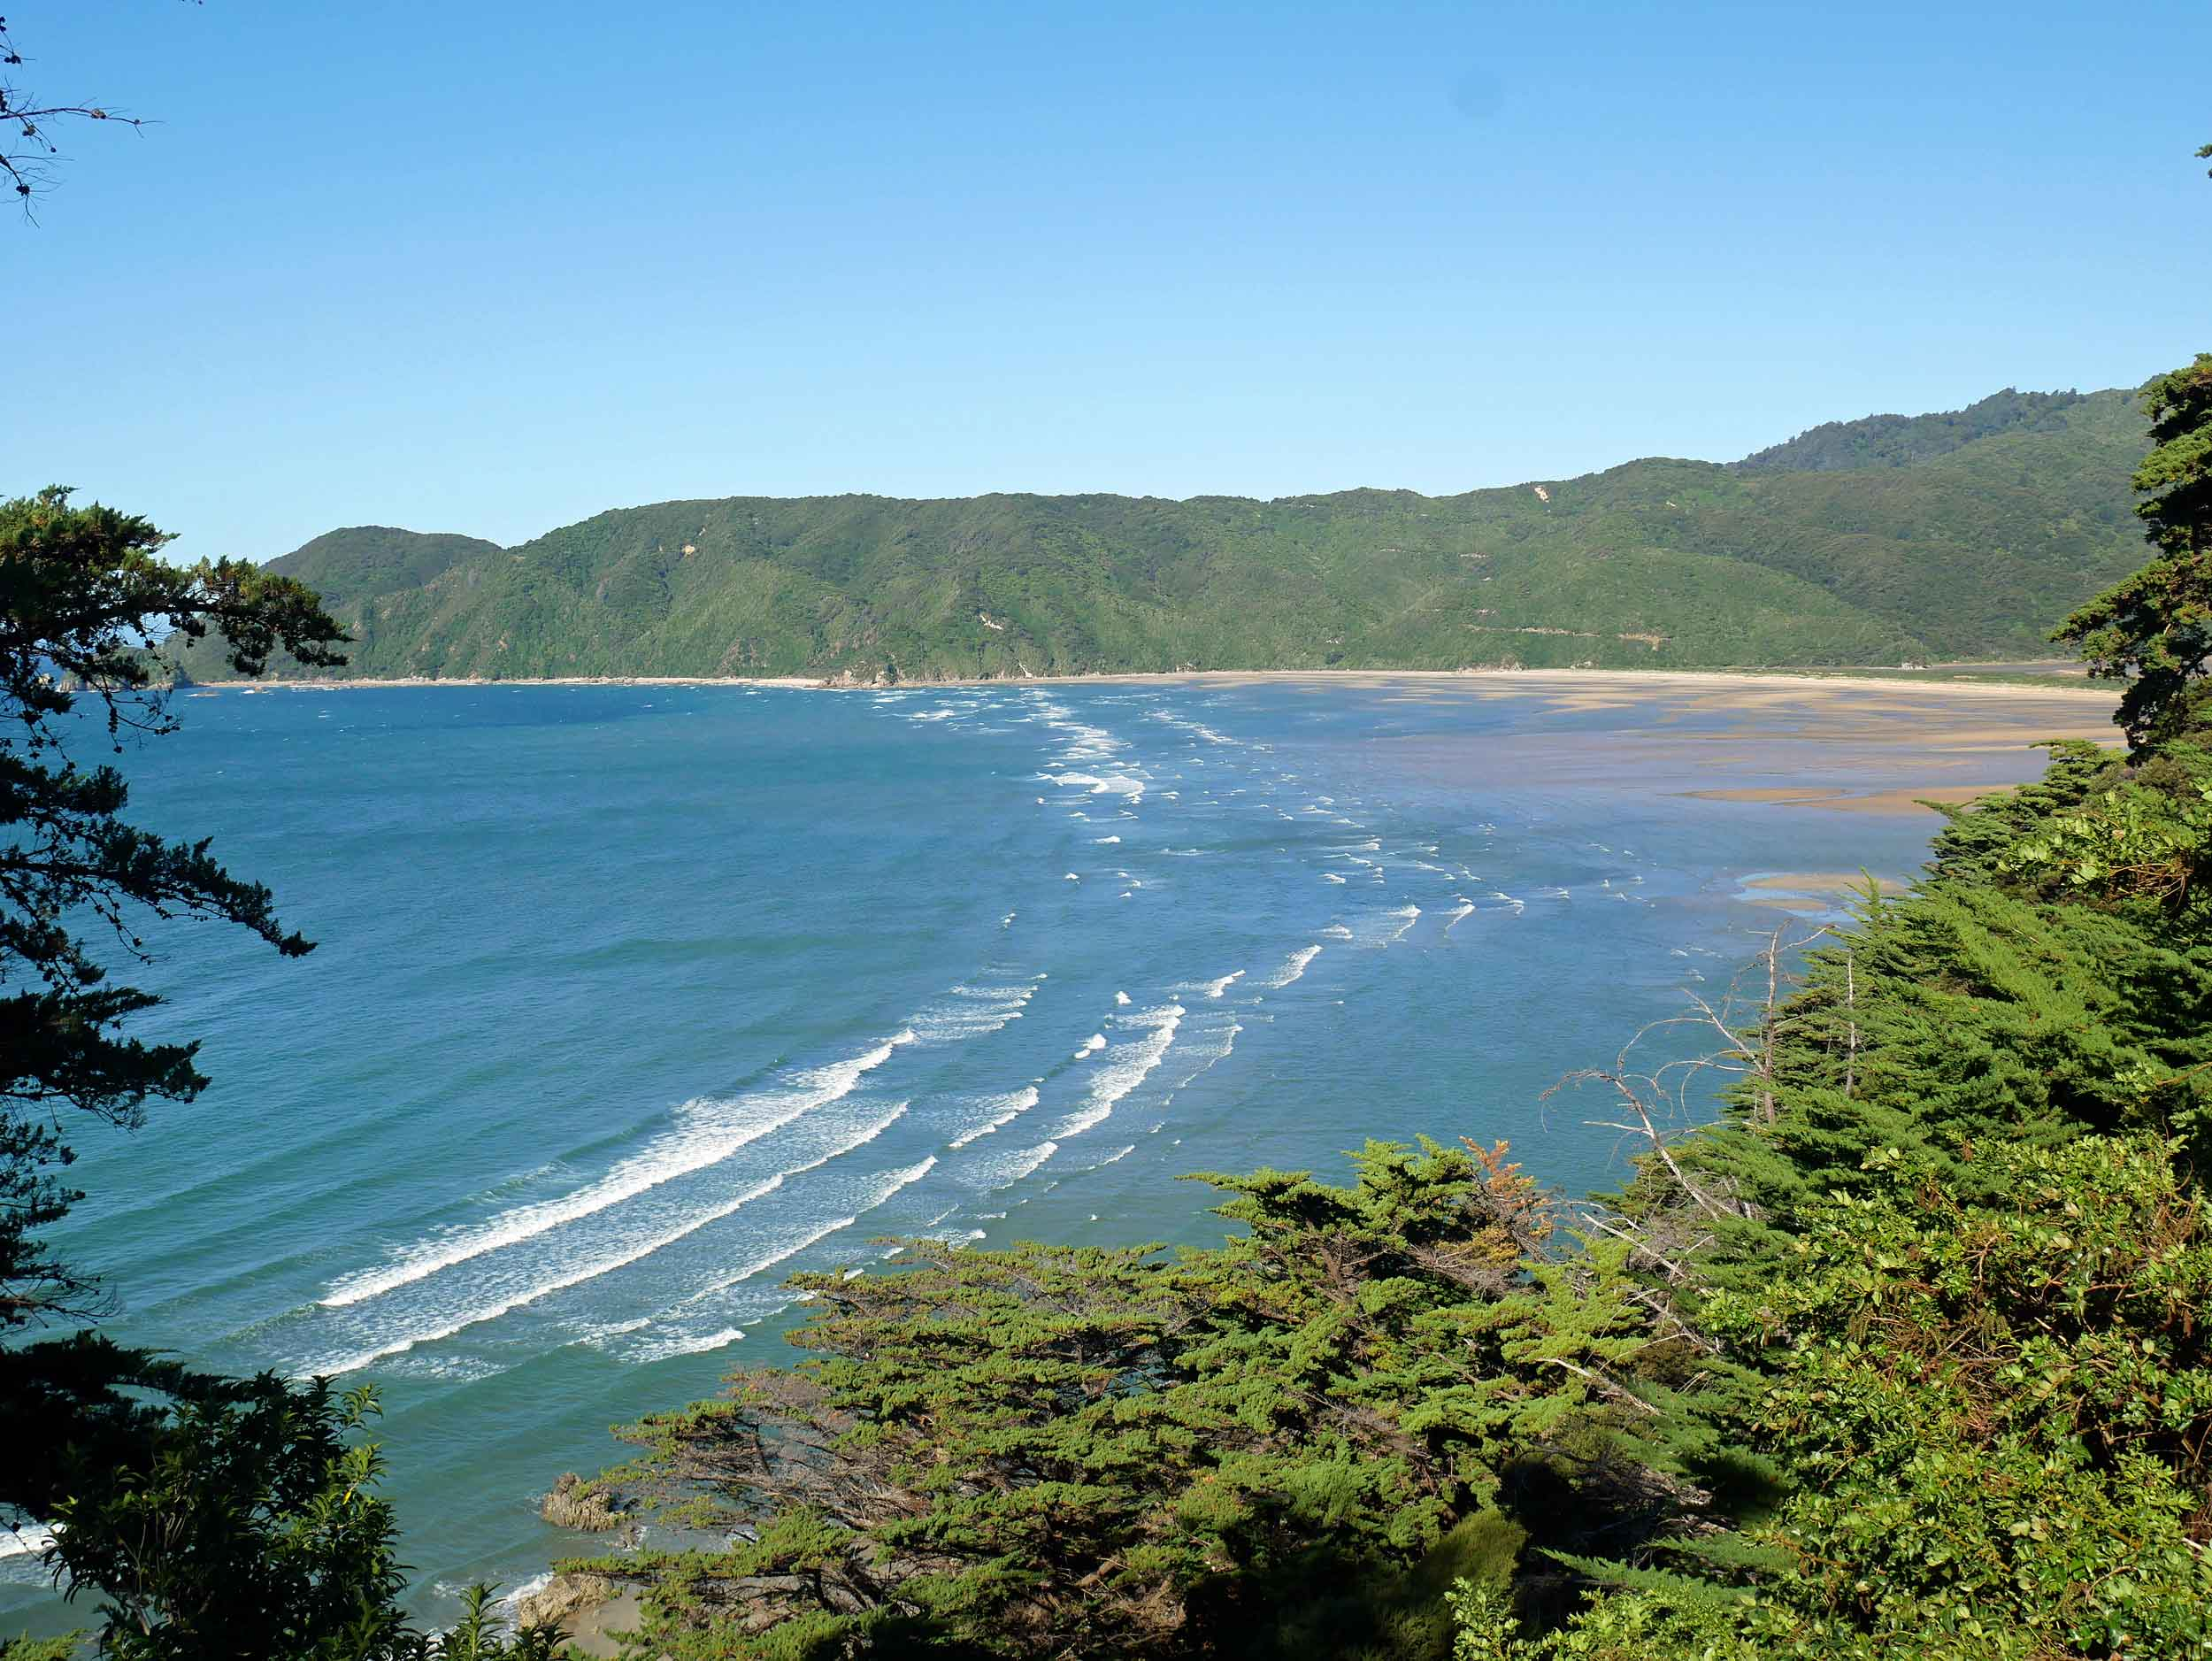 The rolling, windswept waves of Wainui Bay reminded us of the beaches of Hawaii (Jan 16).